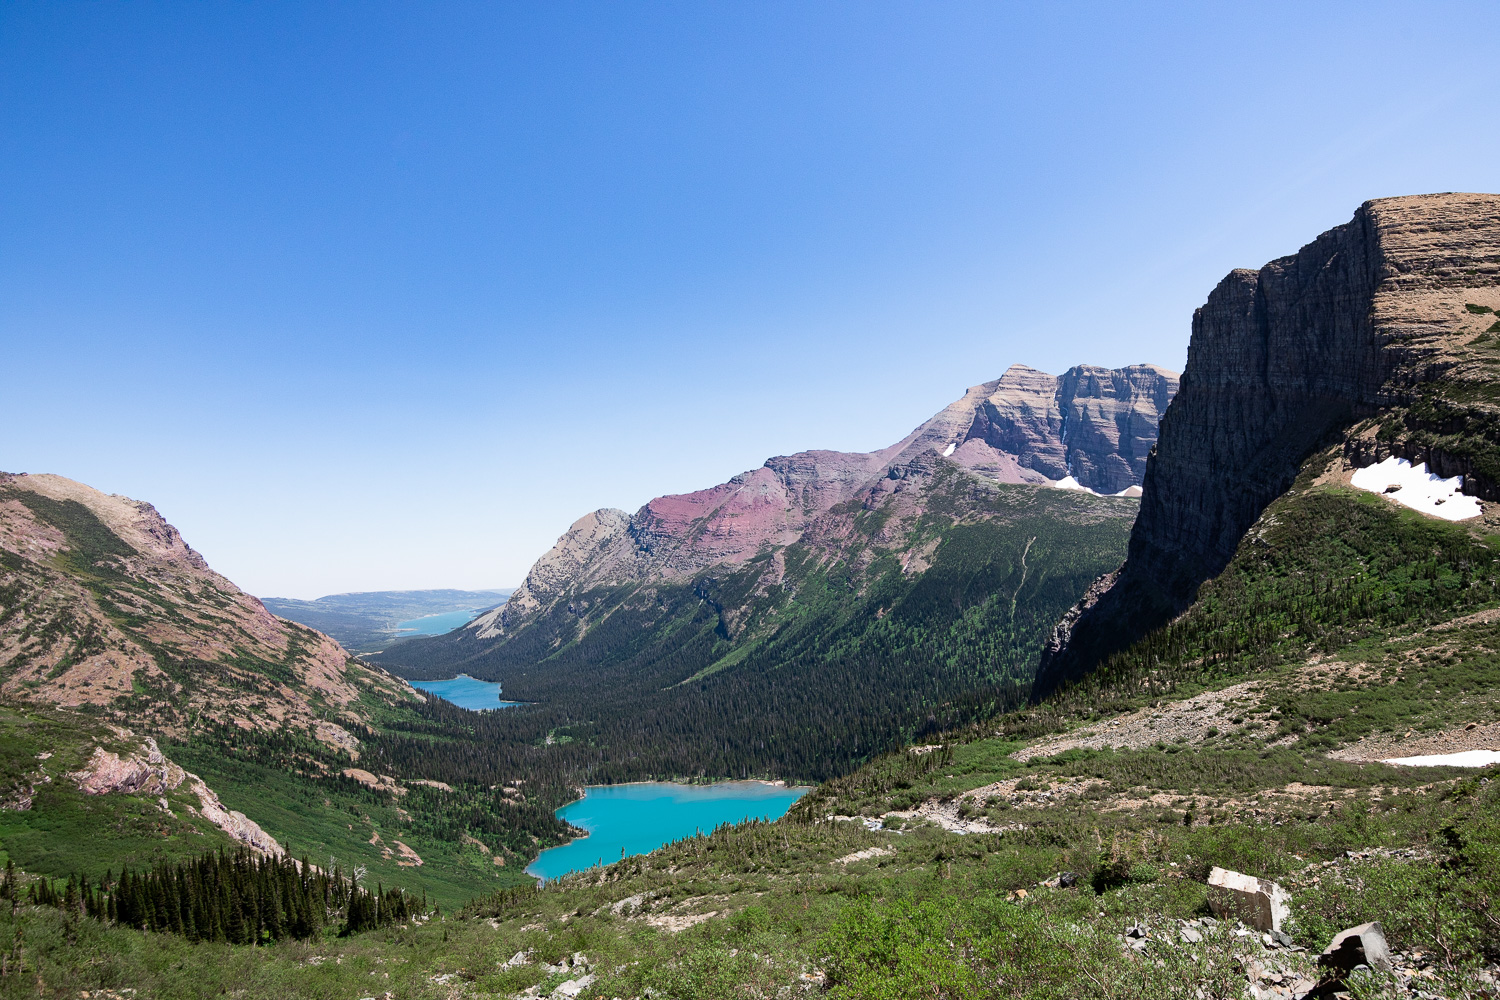 A view of Grinnell Lake, Lake Josephine, and Swiftcurrent Lake from the Grinnell Glacier trail.